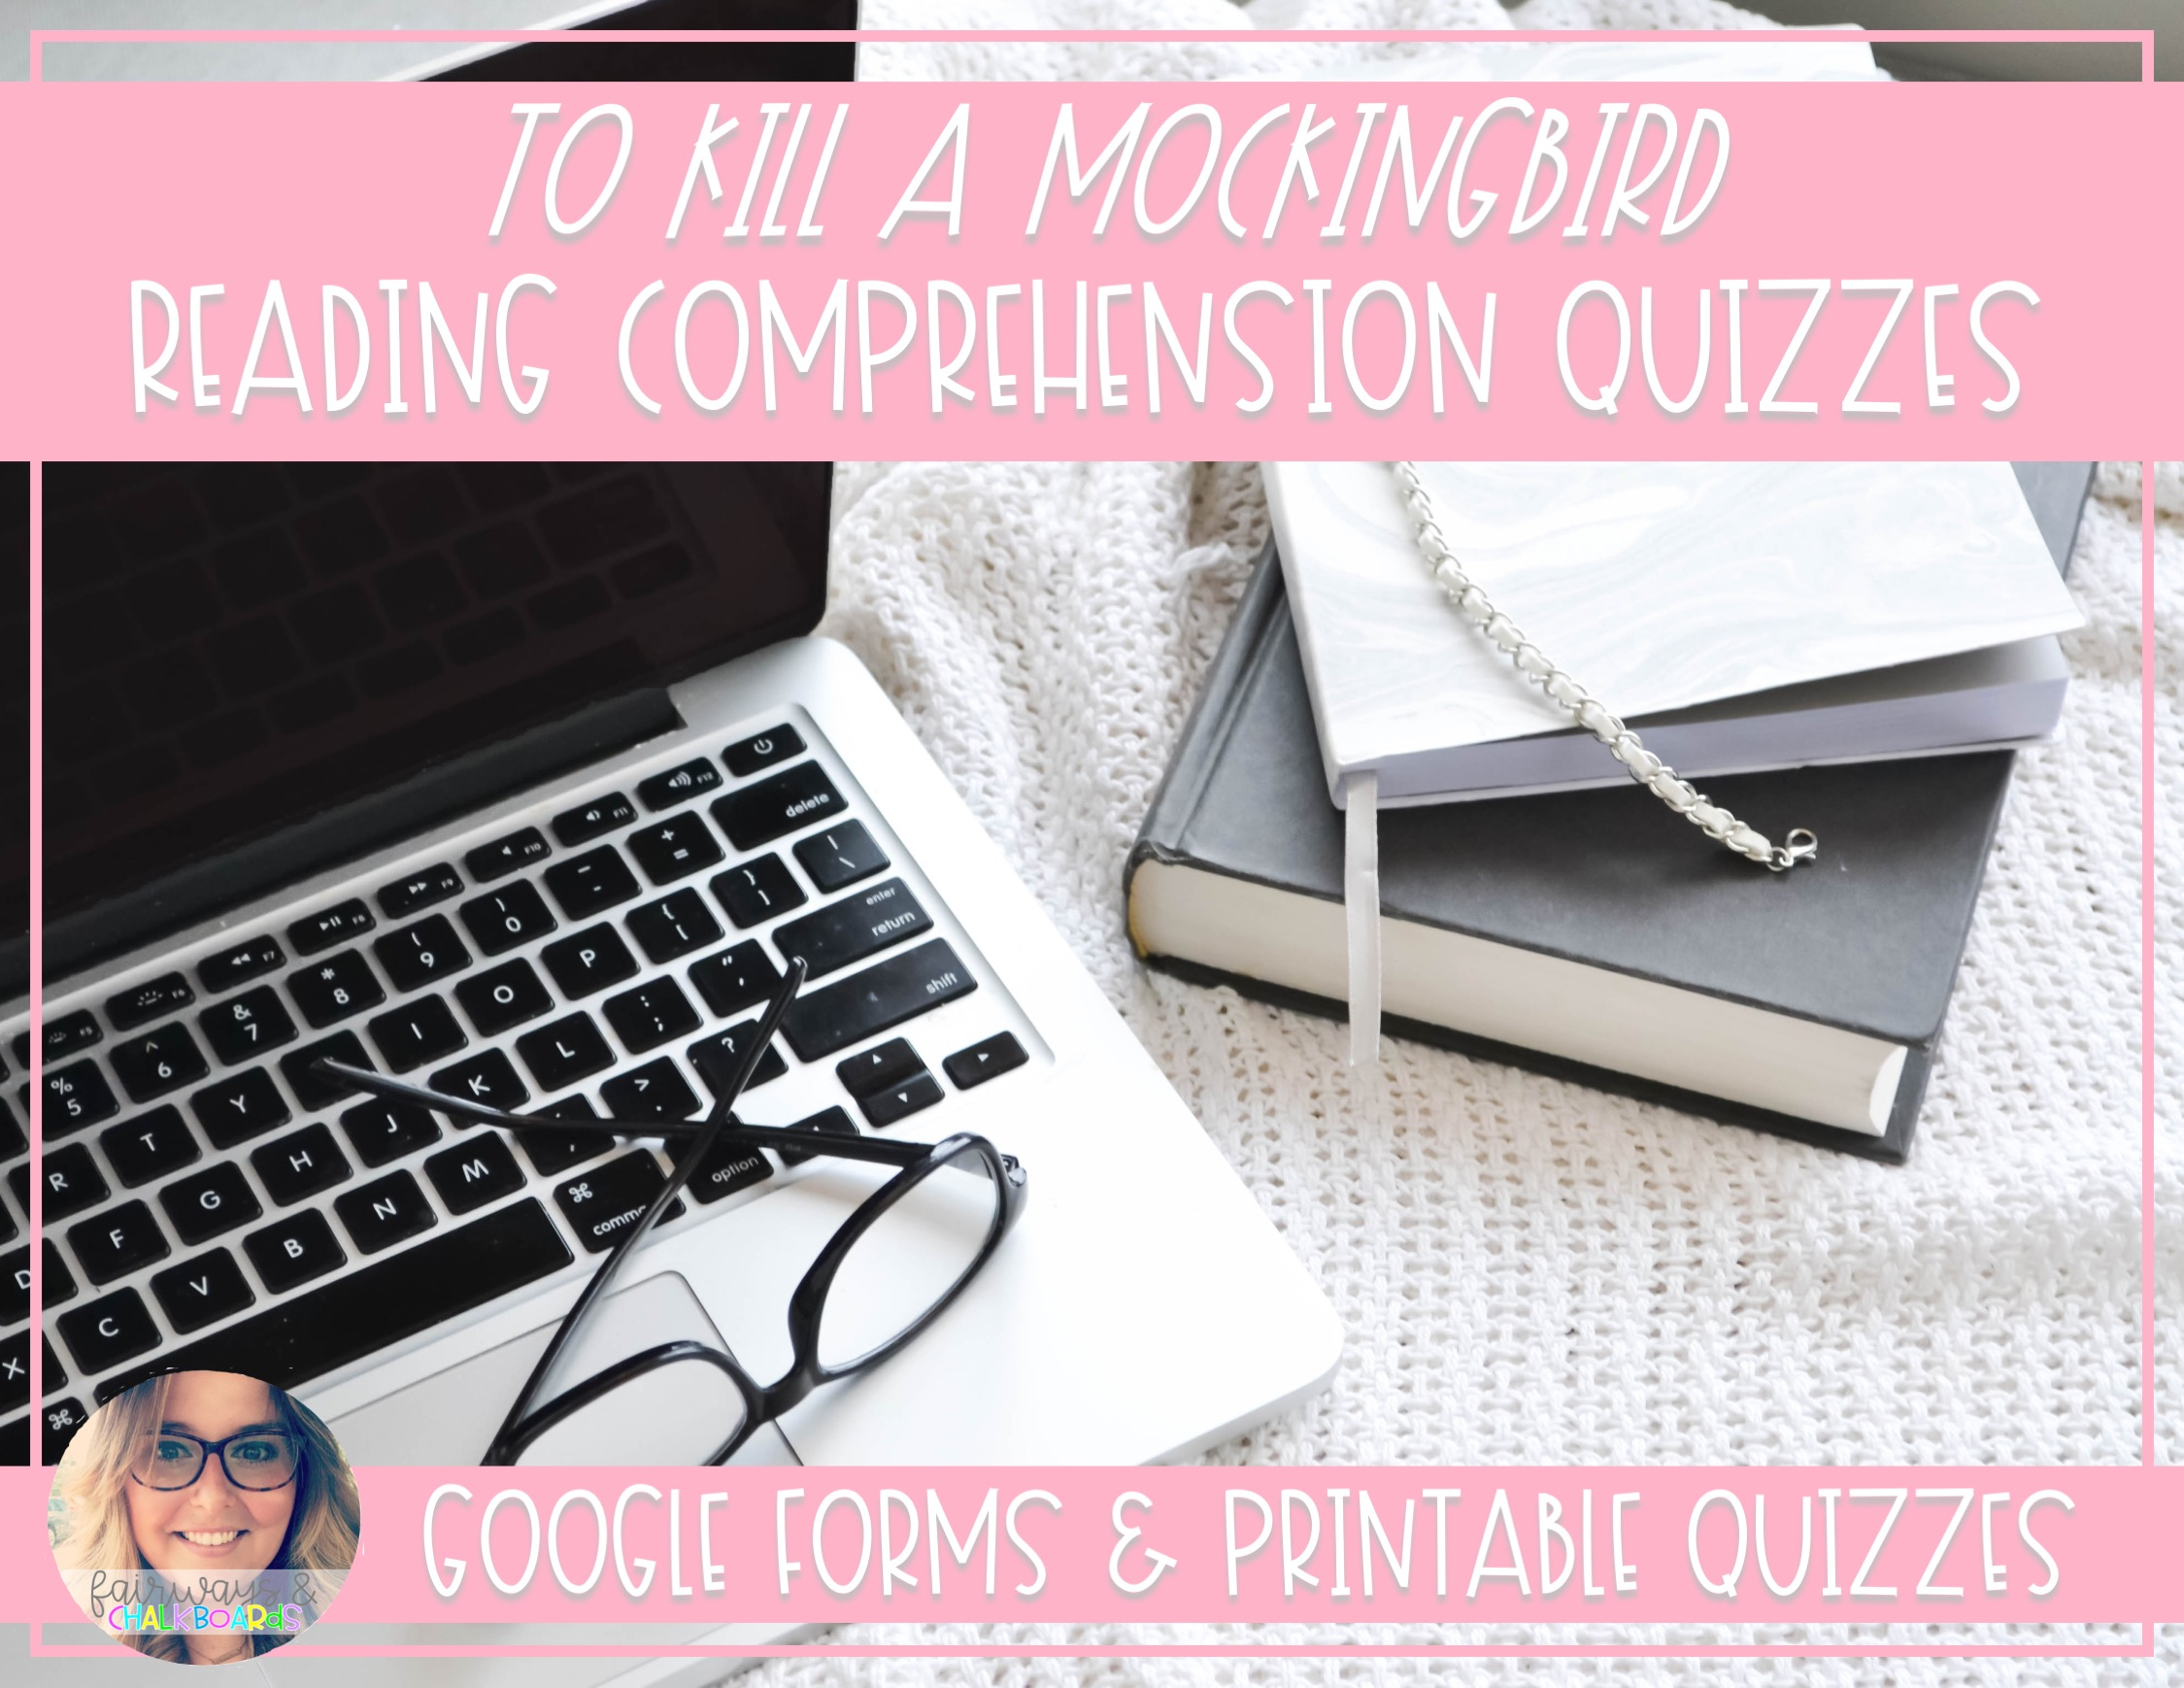 To Kill a Mockingbird Reading Comprehension Quizzes | Digital and Printable